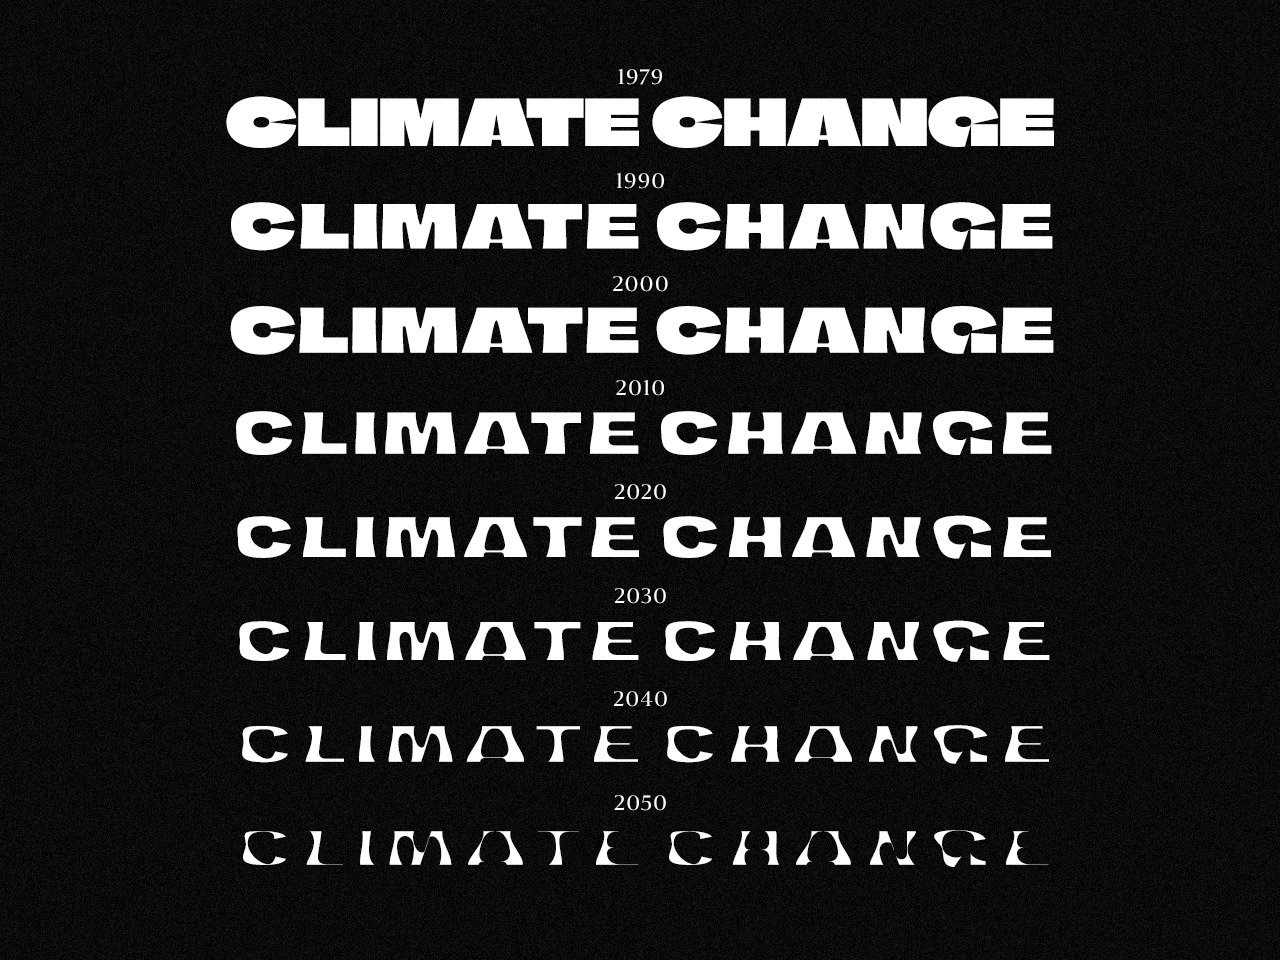 Thumbnail for Helsingin Sanomat Releases Variable Font Highlighting Effects Of Climate Change